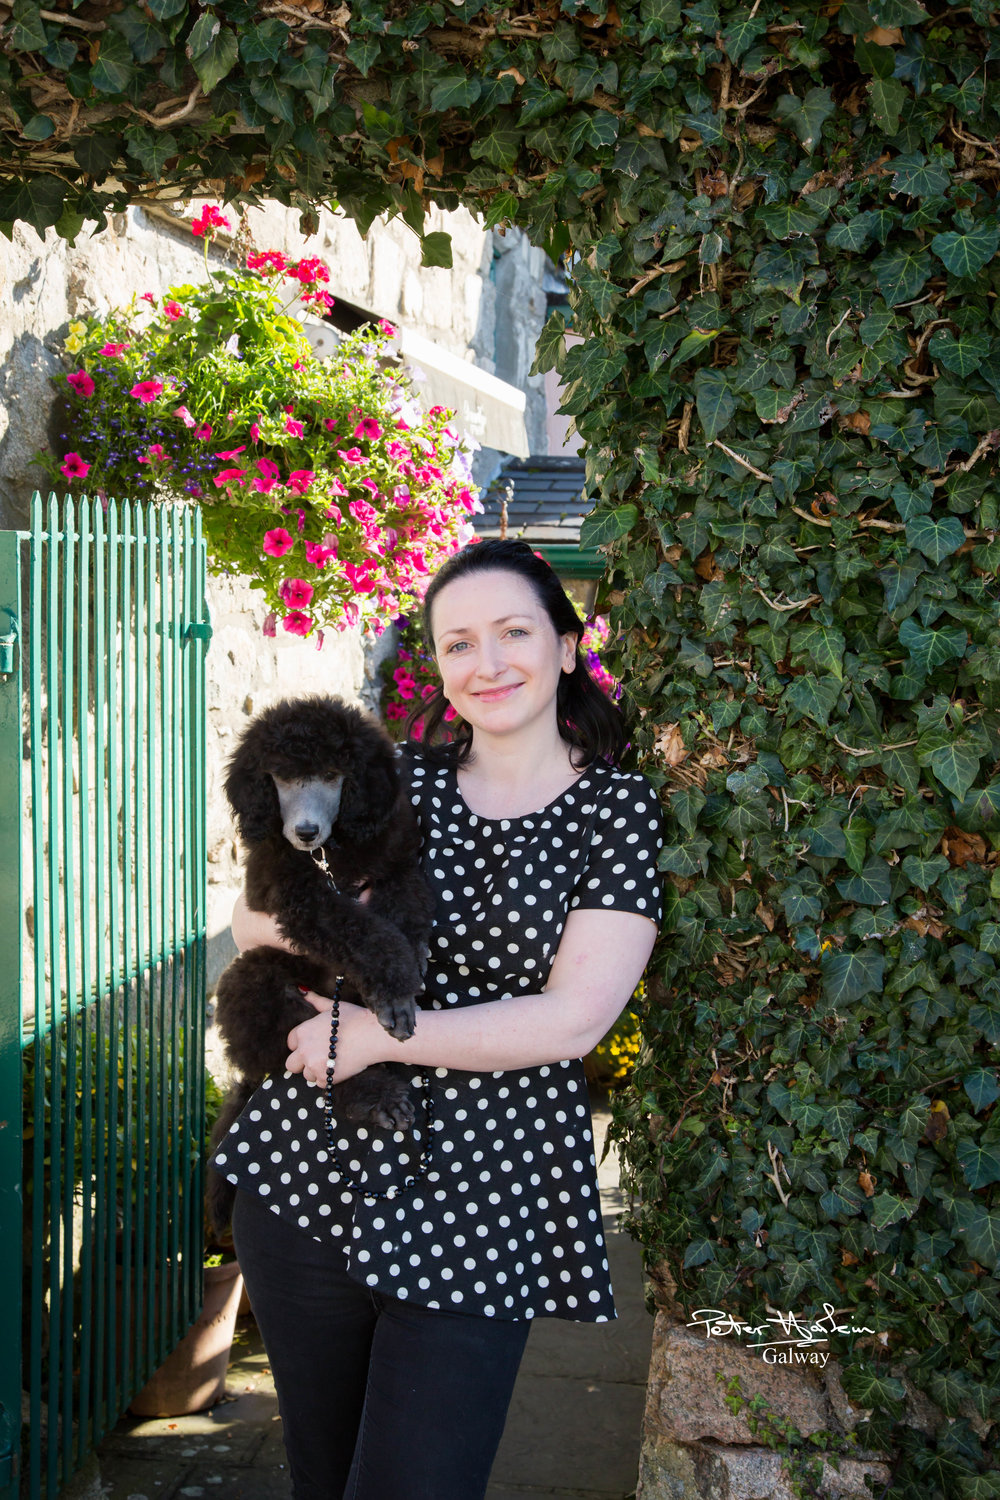 Katie and her standard poodle Gráinne aged 10 weeks